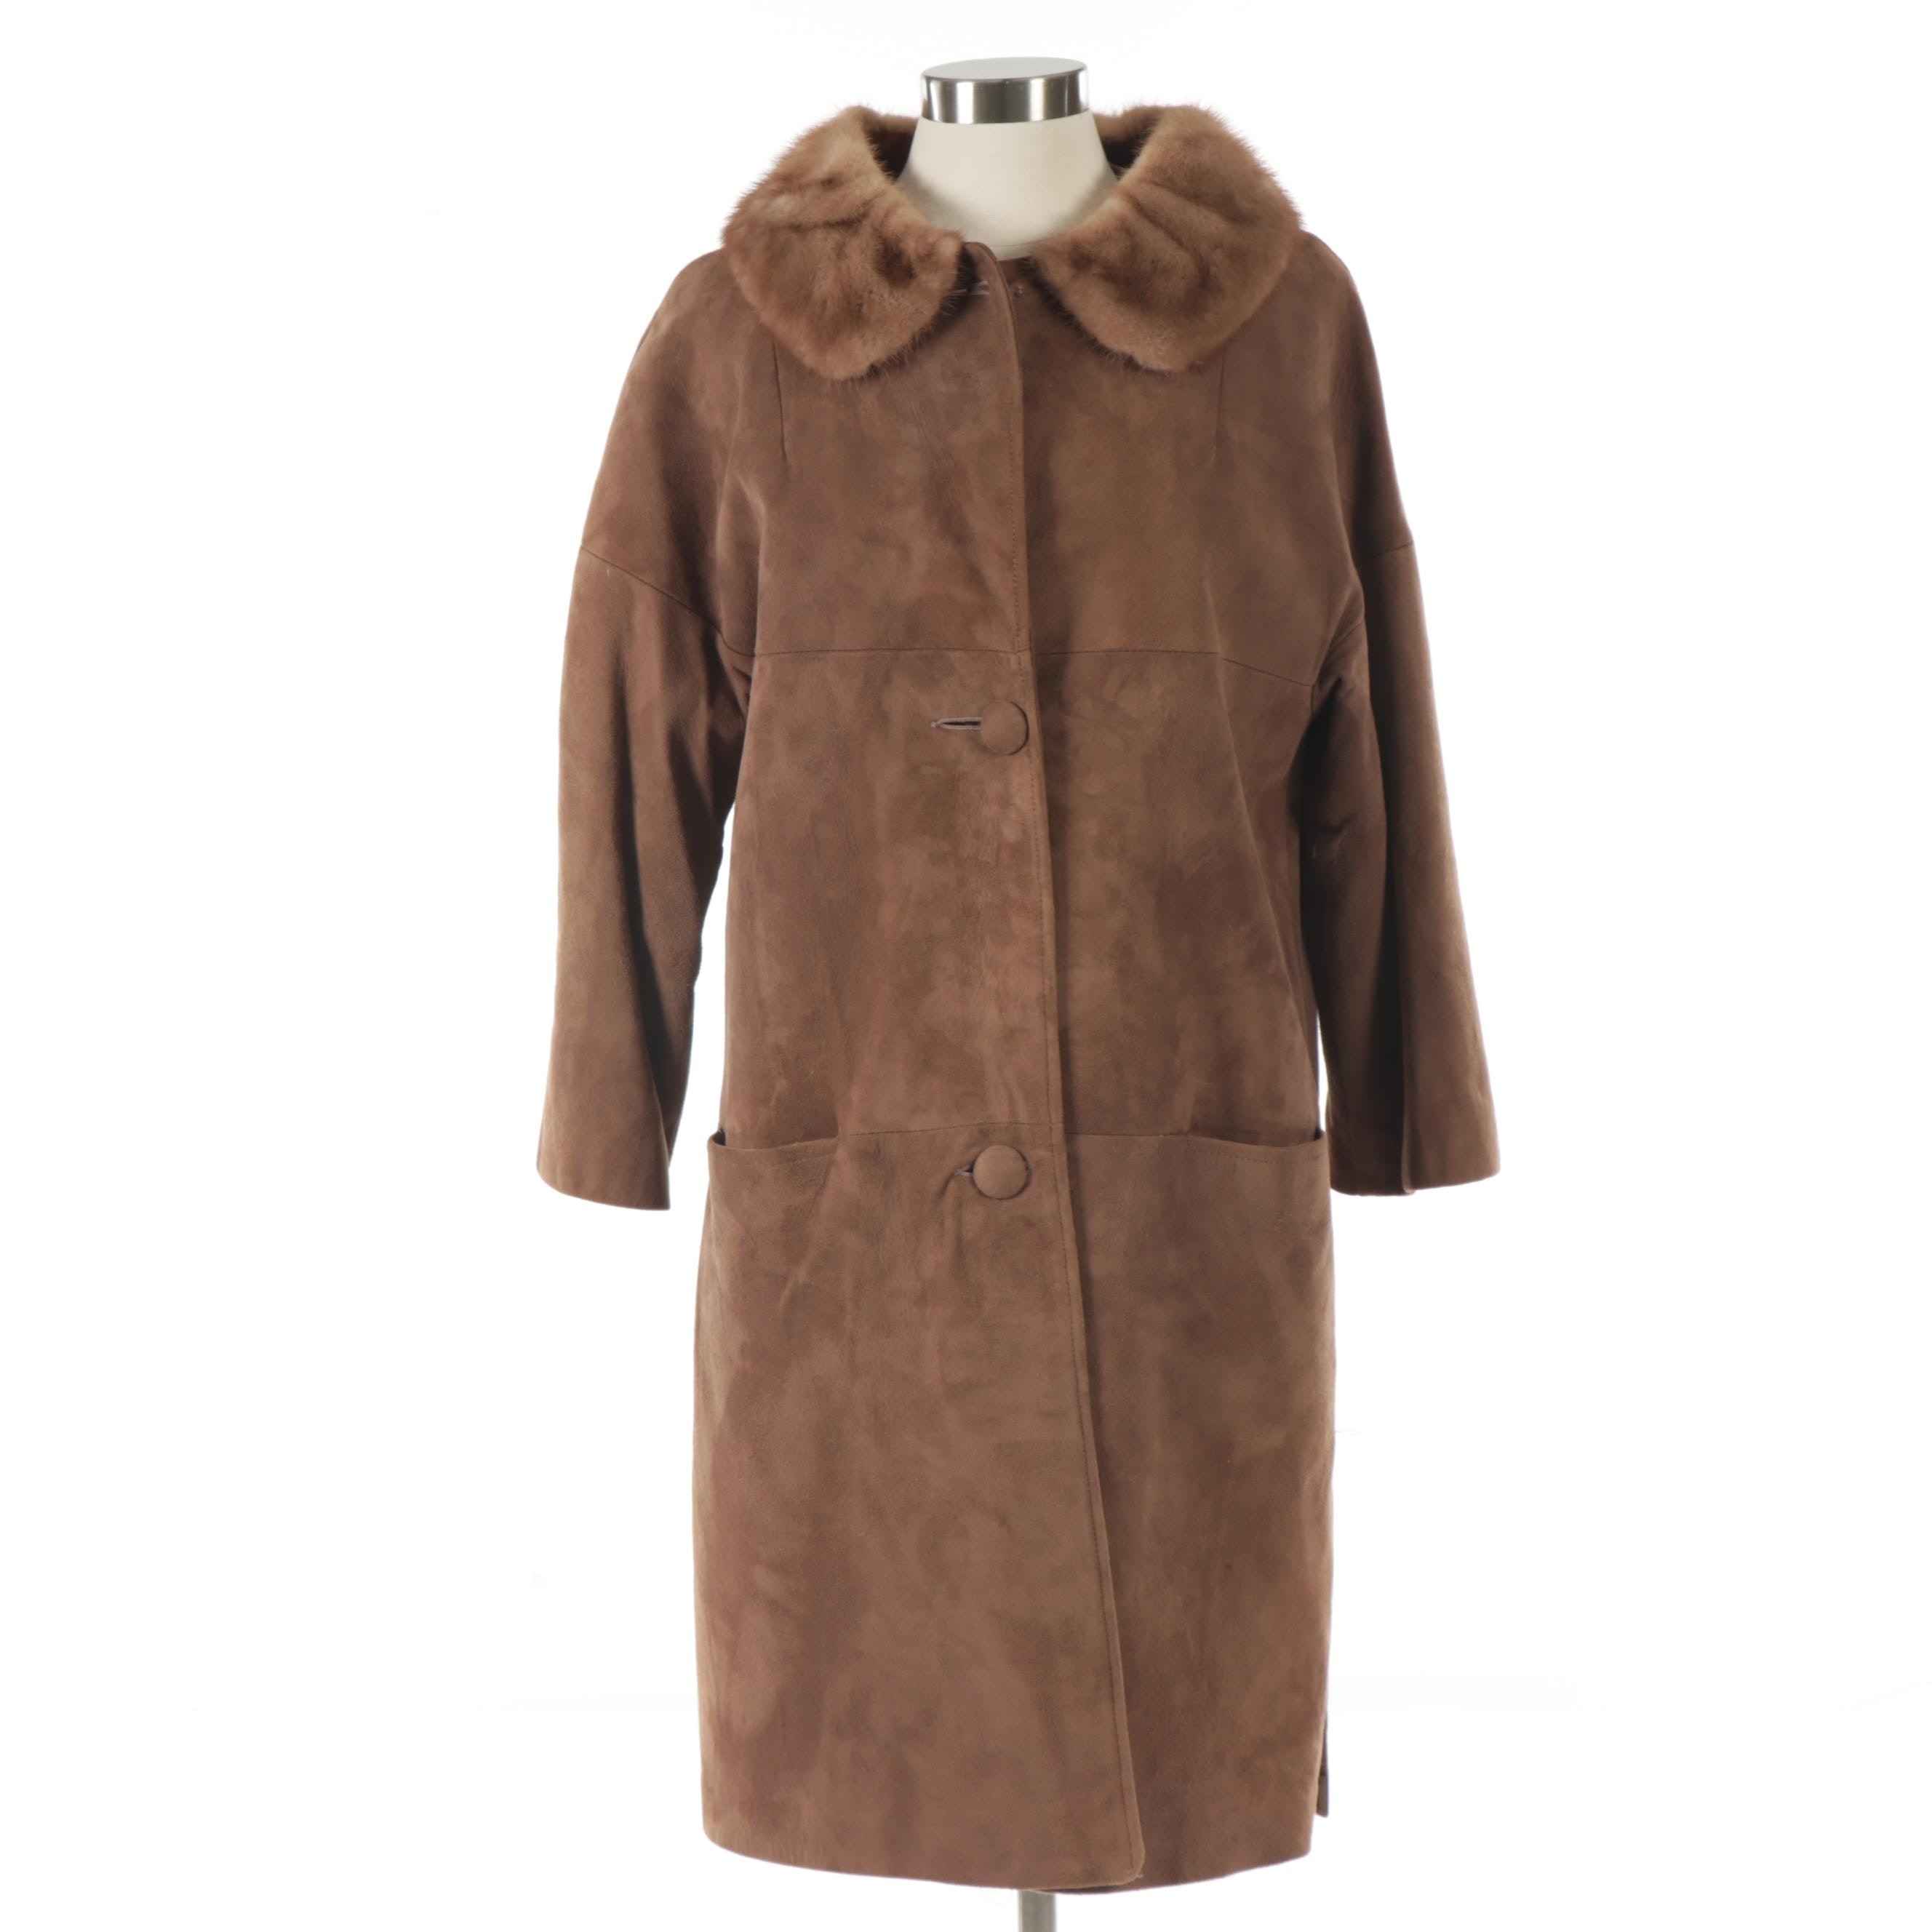 Women's Brown Suede Coat with Mink Fur Collar, Vintage